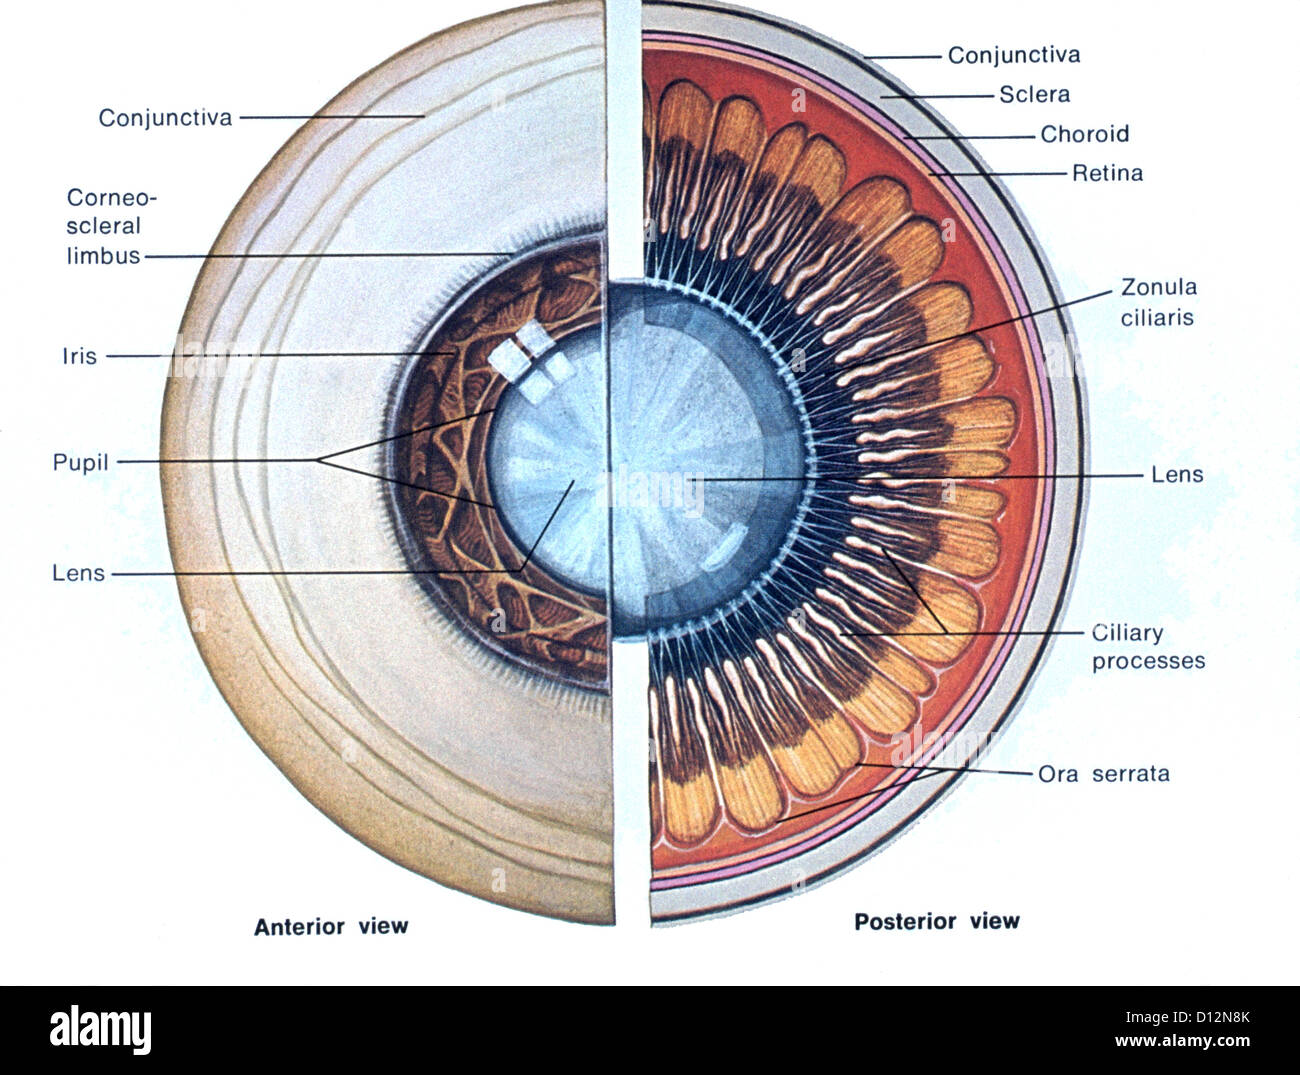 Eye Anatomy Illustration Stock Photo 52306371 Alamy